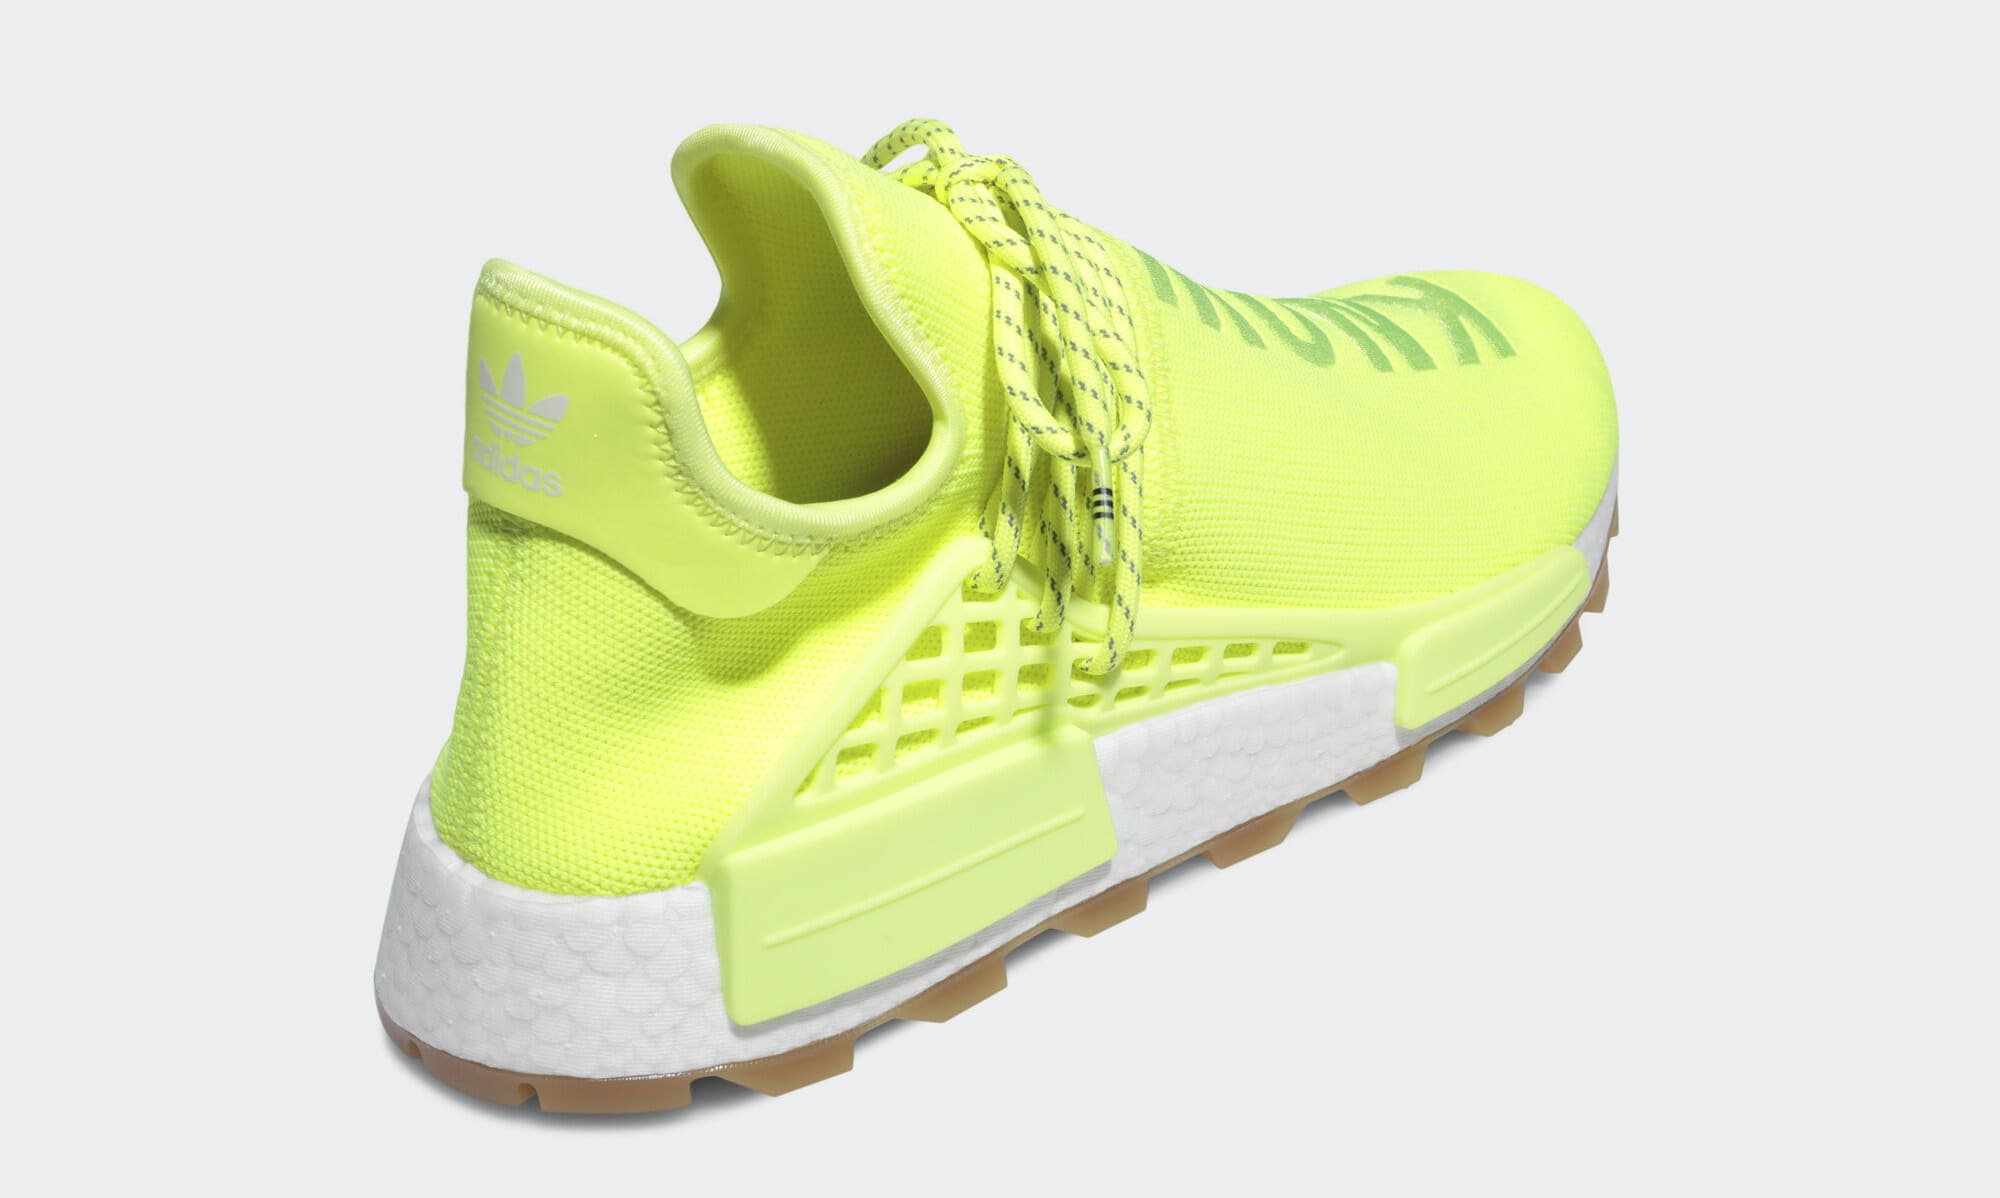 new styles 36457 8fd8c Pharrell x Adidas NMD Hu 'Now Is Her Time' Pack EF2335 ...